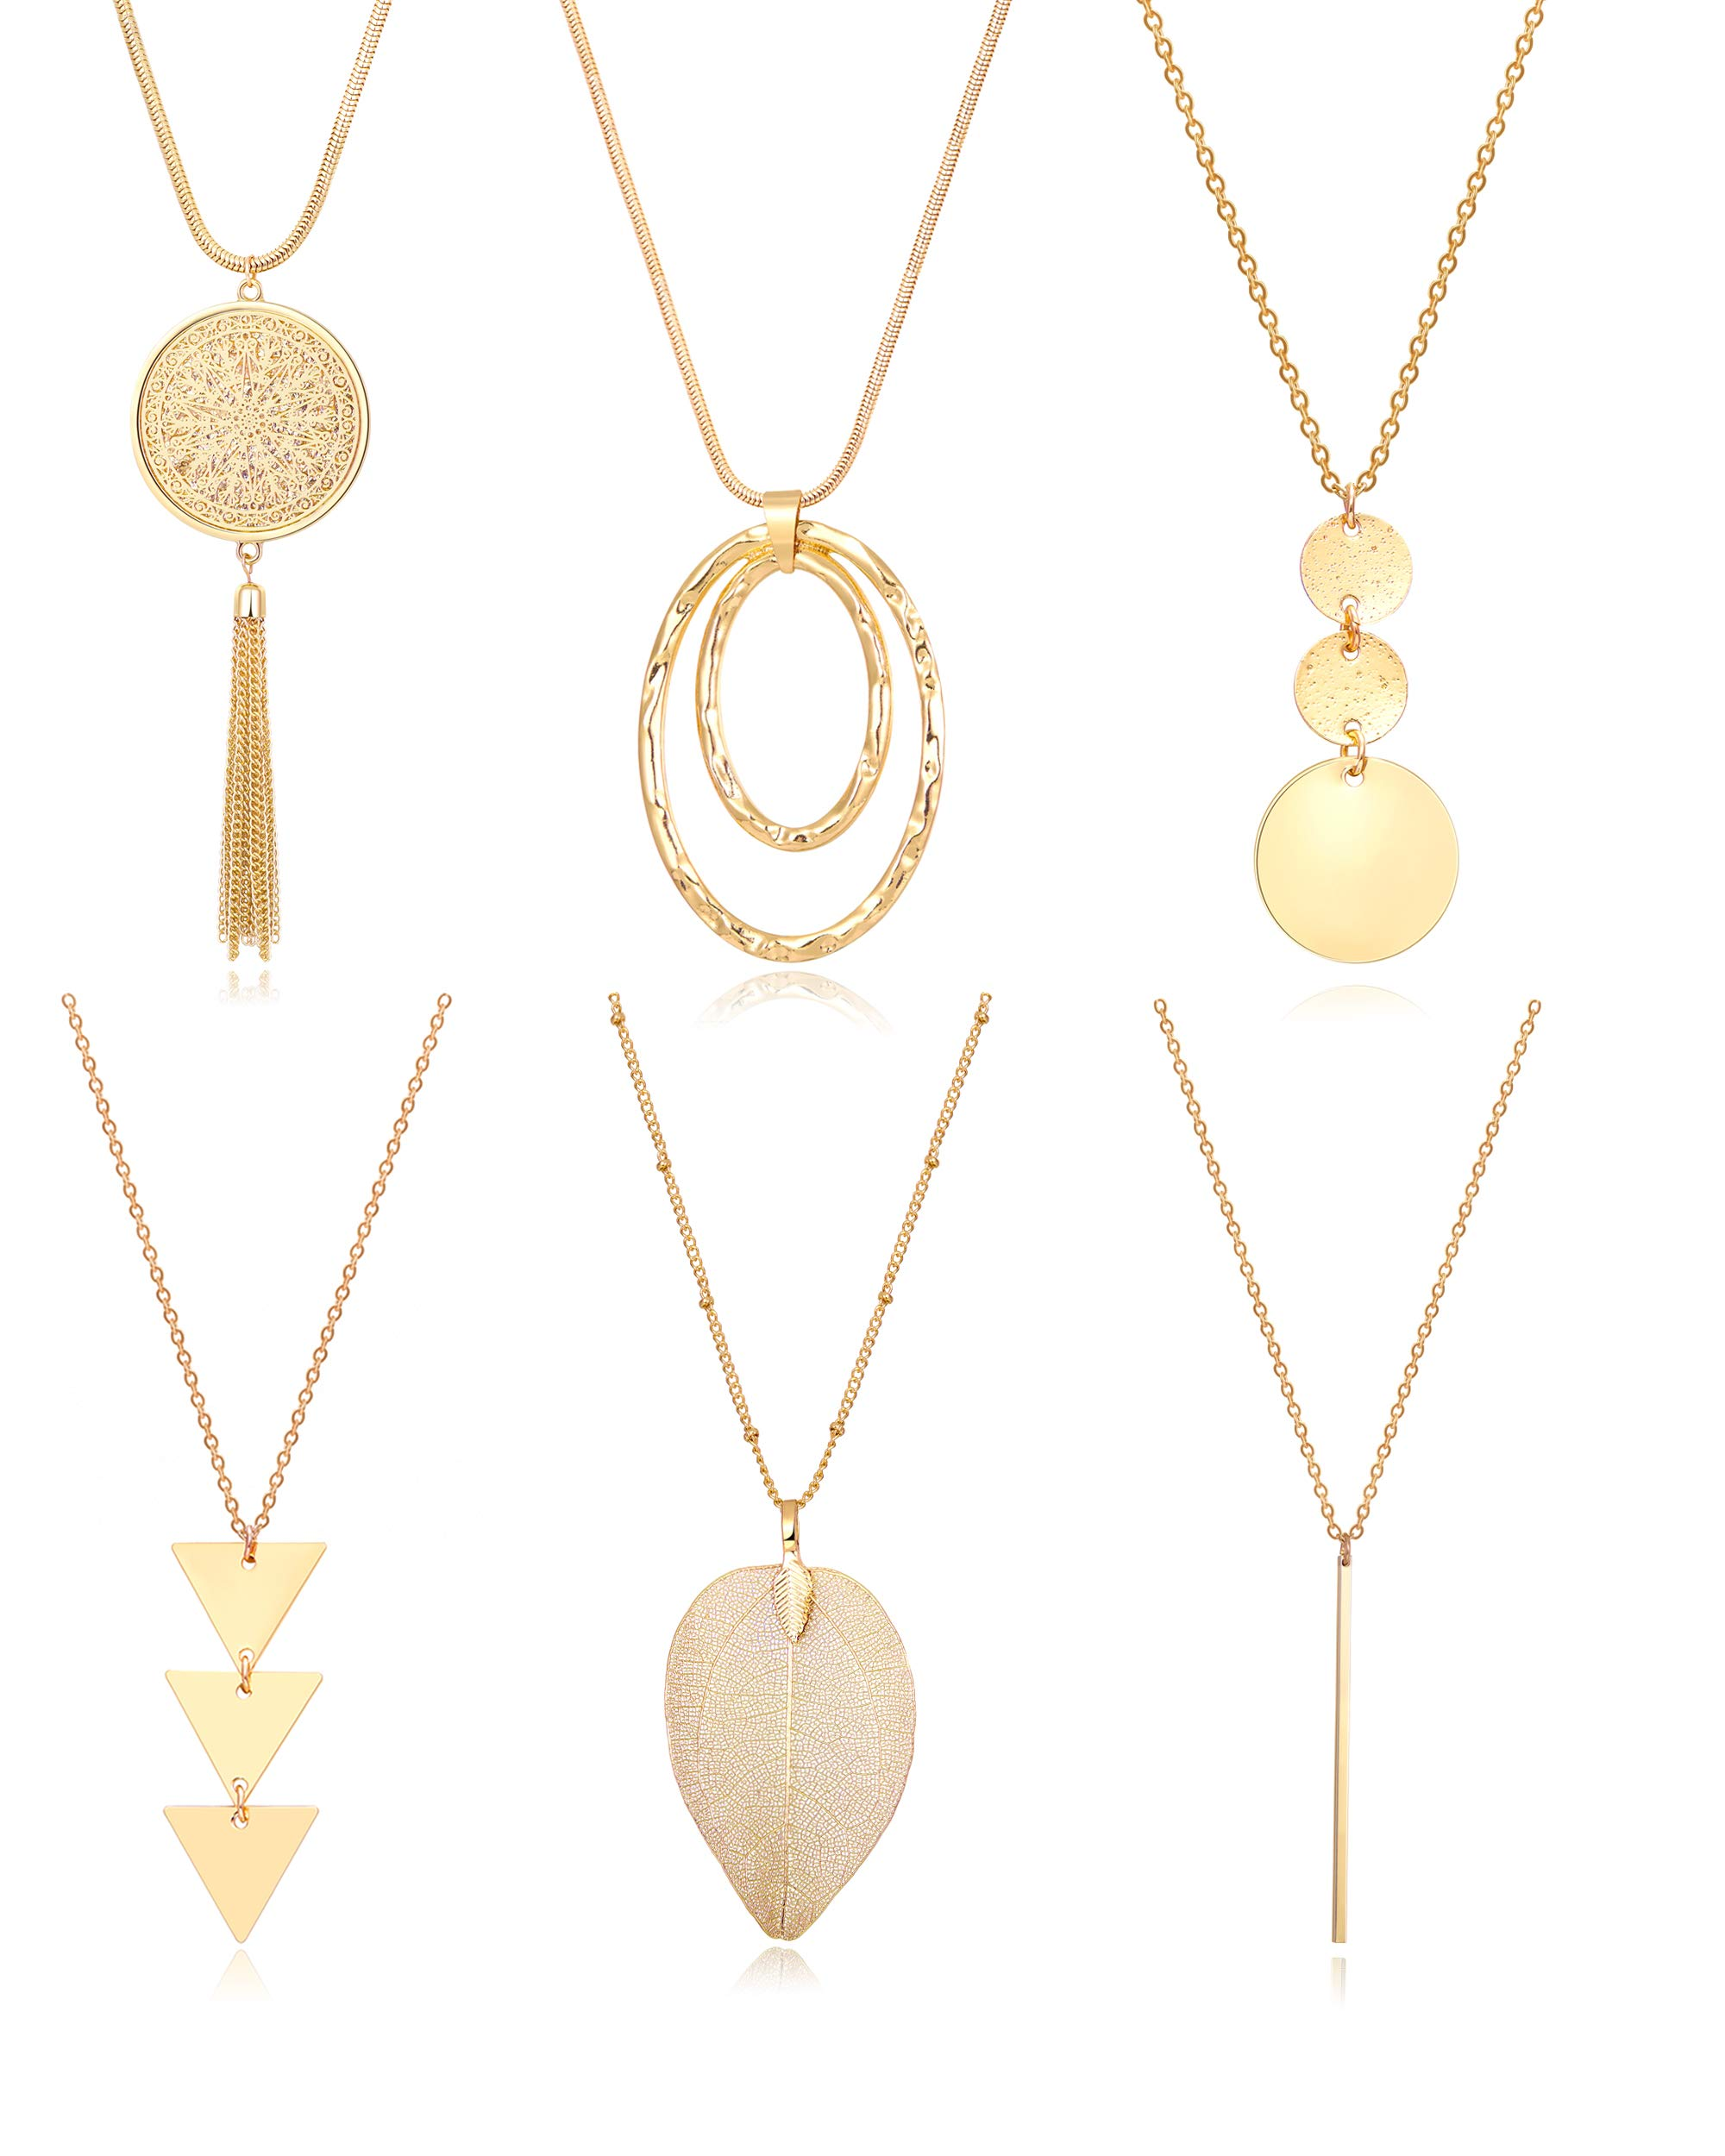 Fesciory 6 PCS Long Pendant Necklace for Women Gold Bar Circle Leaf Triangle Tassel Y Necklace Set for Girls